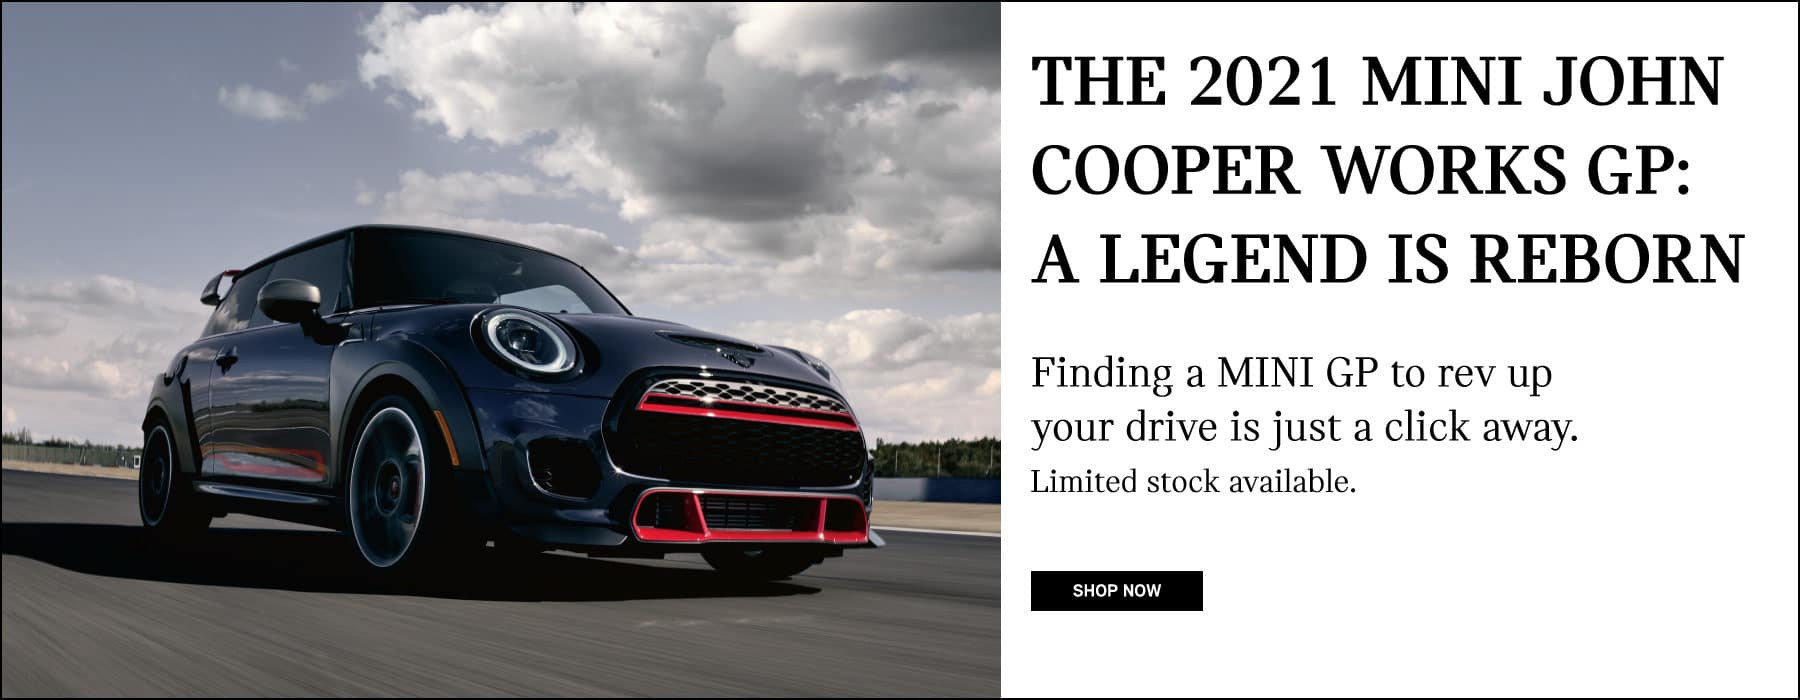 THE 2021 MINI JOHN COOPER WORKS GP: A LEGEND IS REBORN. FINDING A MINI GP TO REV UP YOUR DRIVE IS JUST A CLICK AWAY. LIMITED STOCK AVAILABLE. SHOP NOW BUTTON.